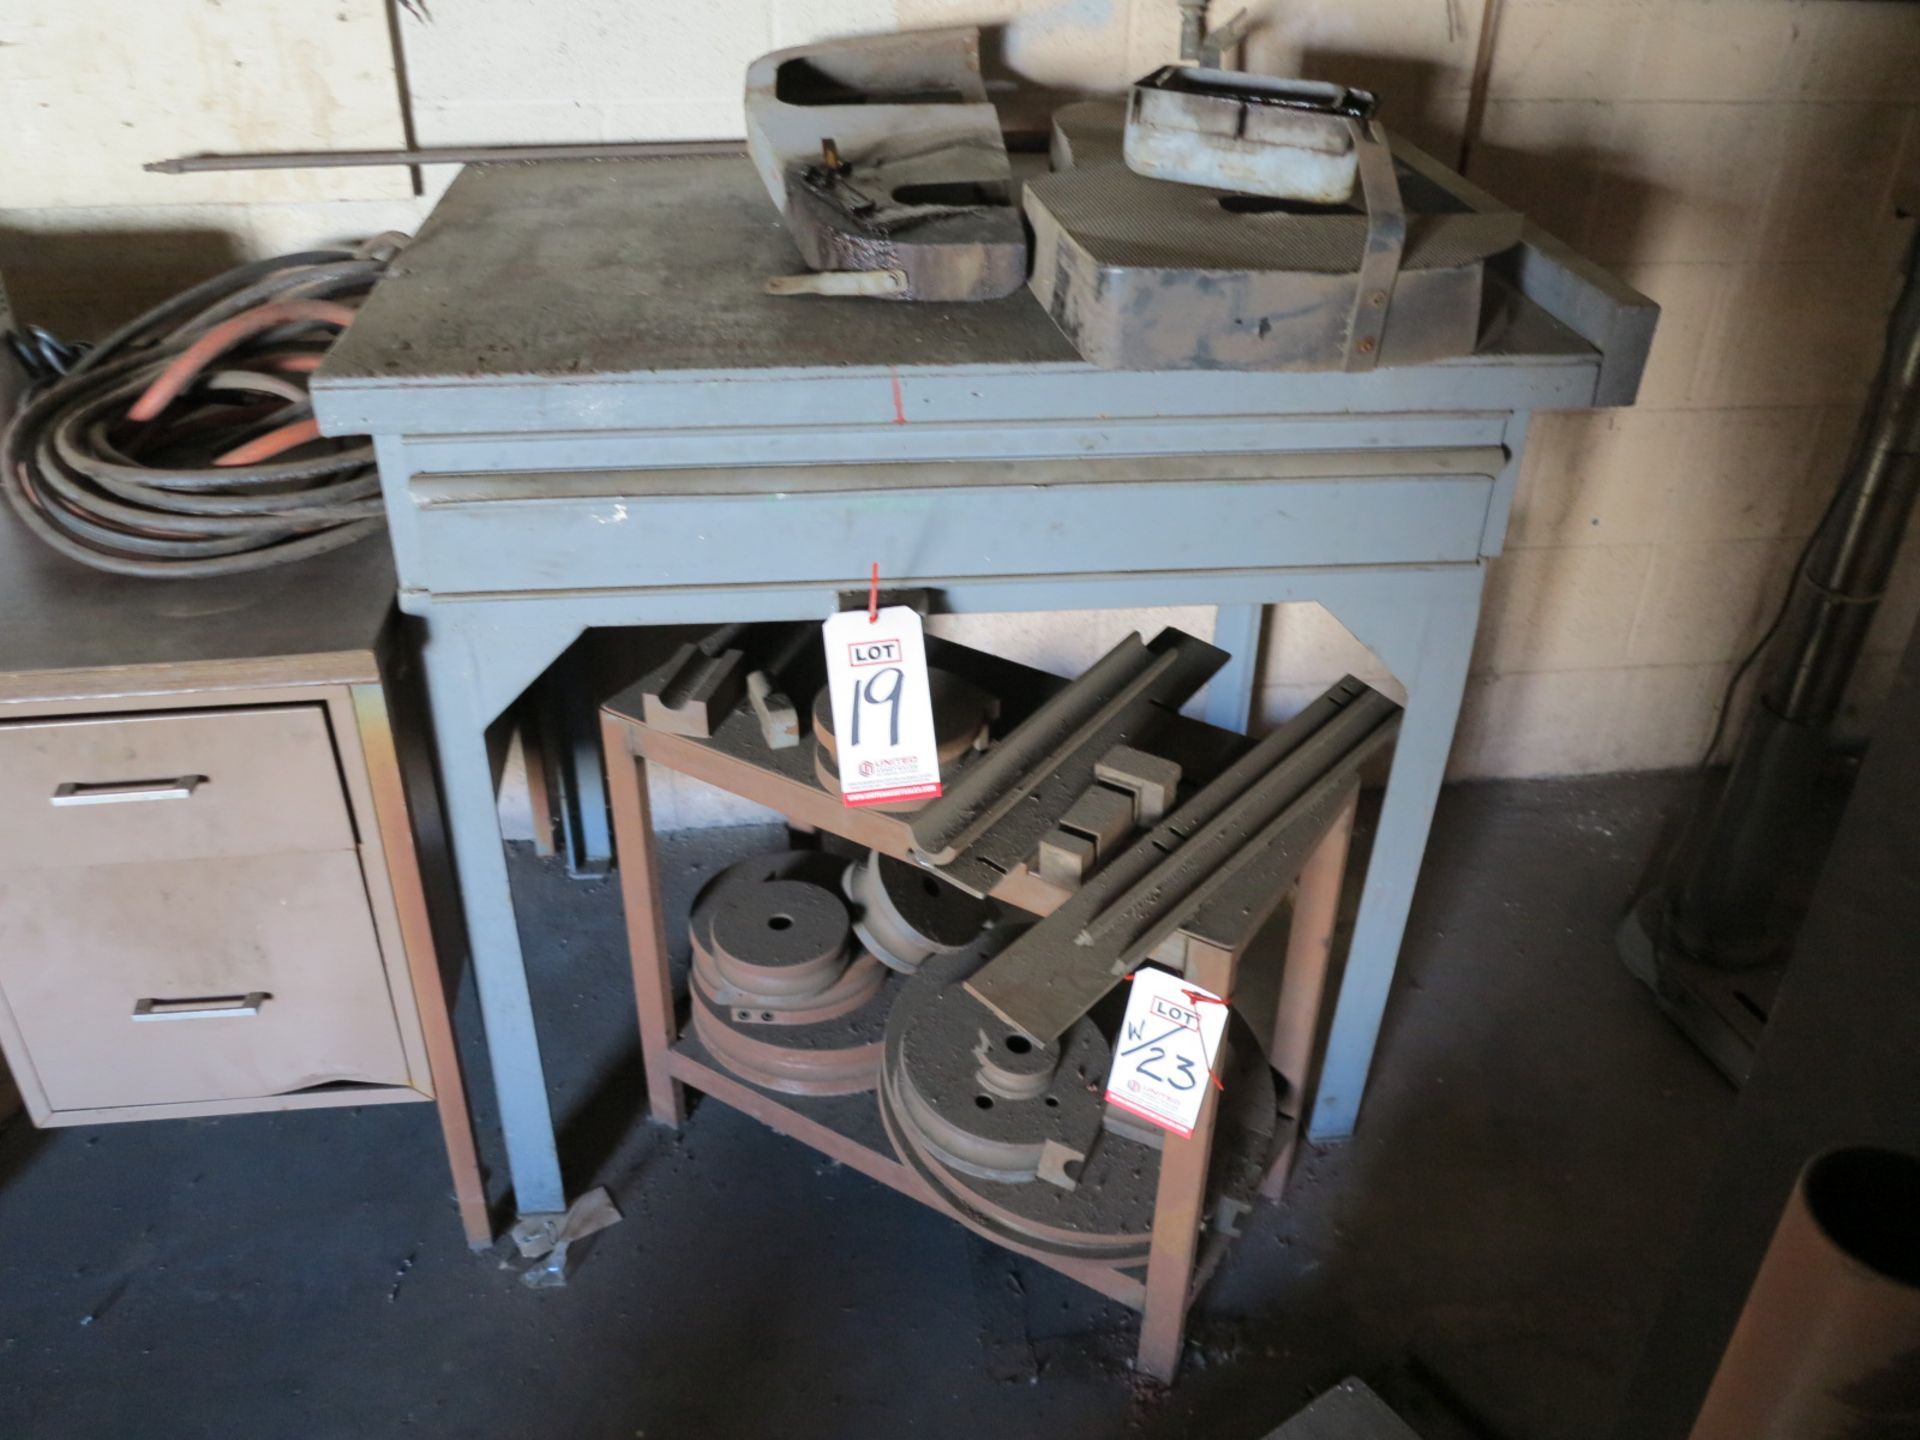 Lot 19 - LOT - (2) DESKS W/ CONTENTS OF MAINTENANCE SUPPLIES AND (2) 36 VOLT BATTERY CHARGERS